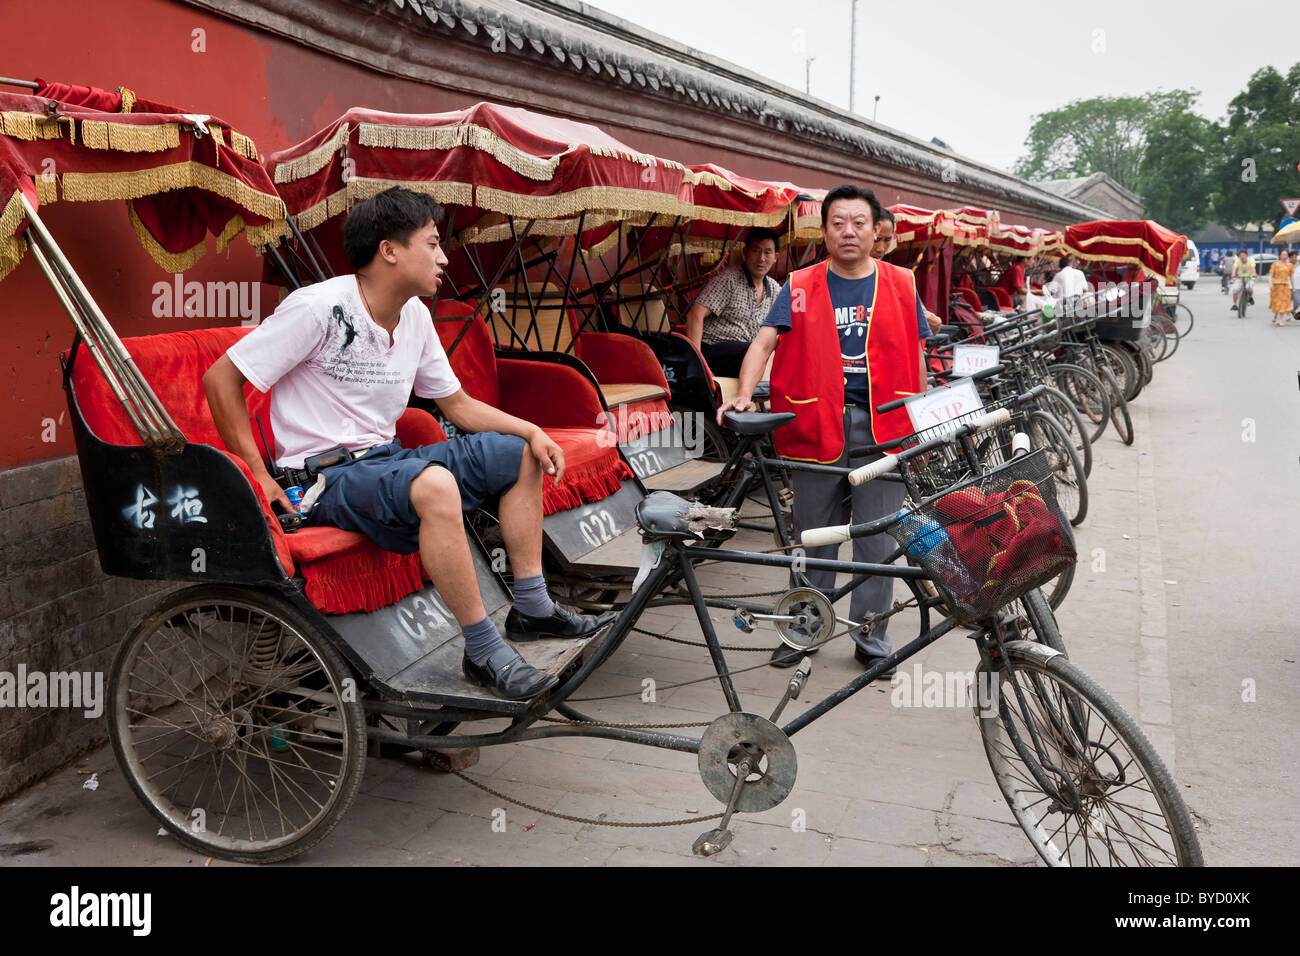 Trishaws waiting to take tourists on a tour of the hutongs in Beijing, China. JMH4839 - Stock Image